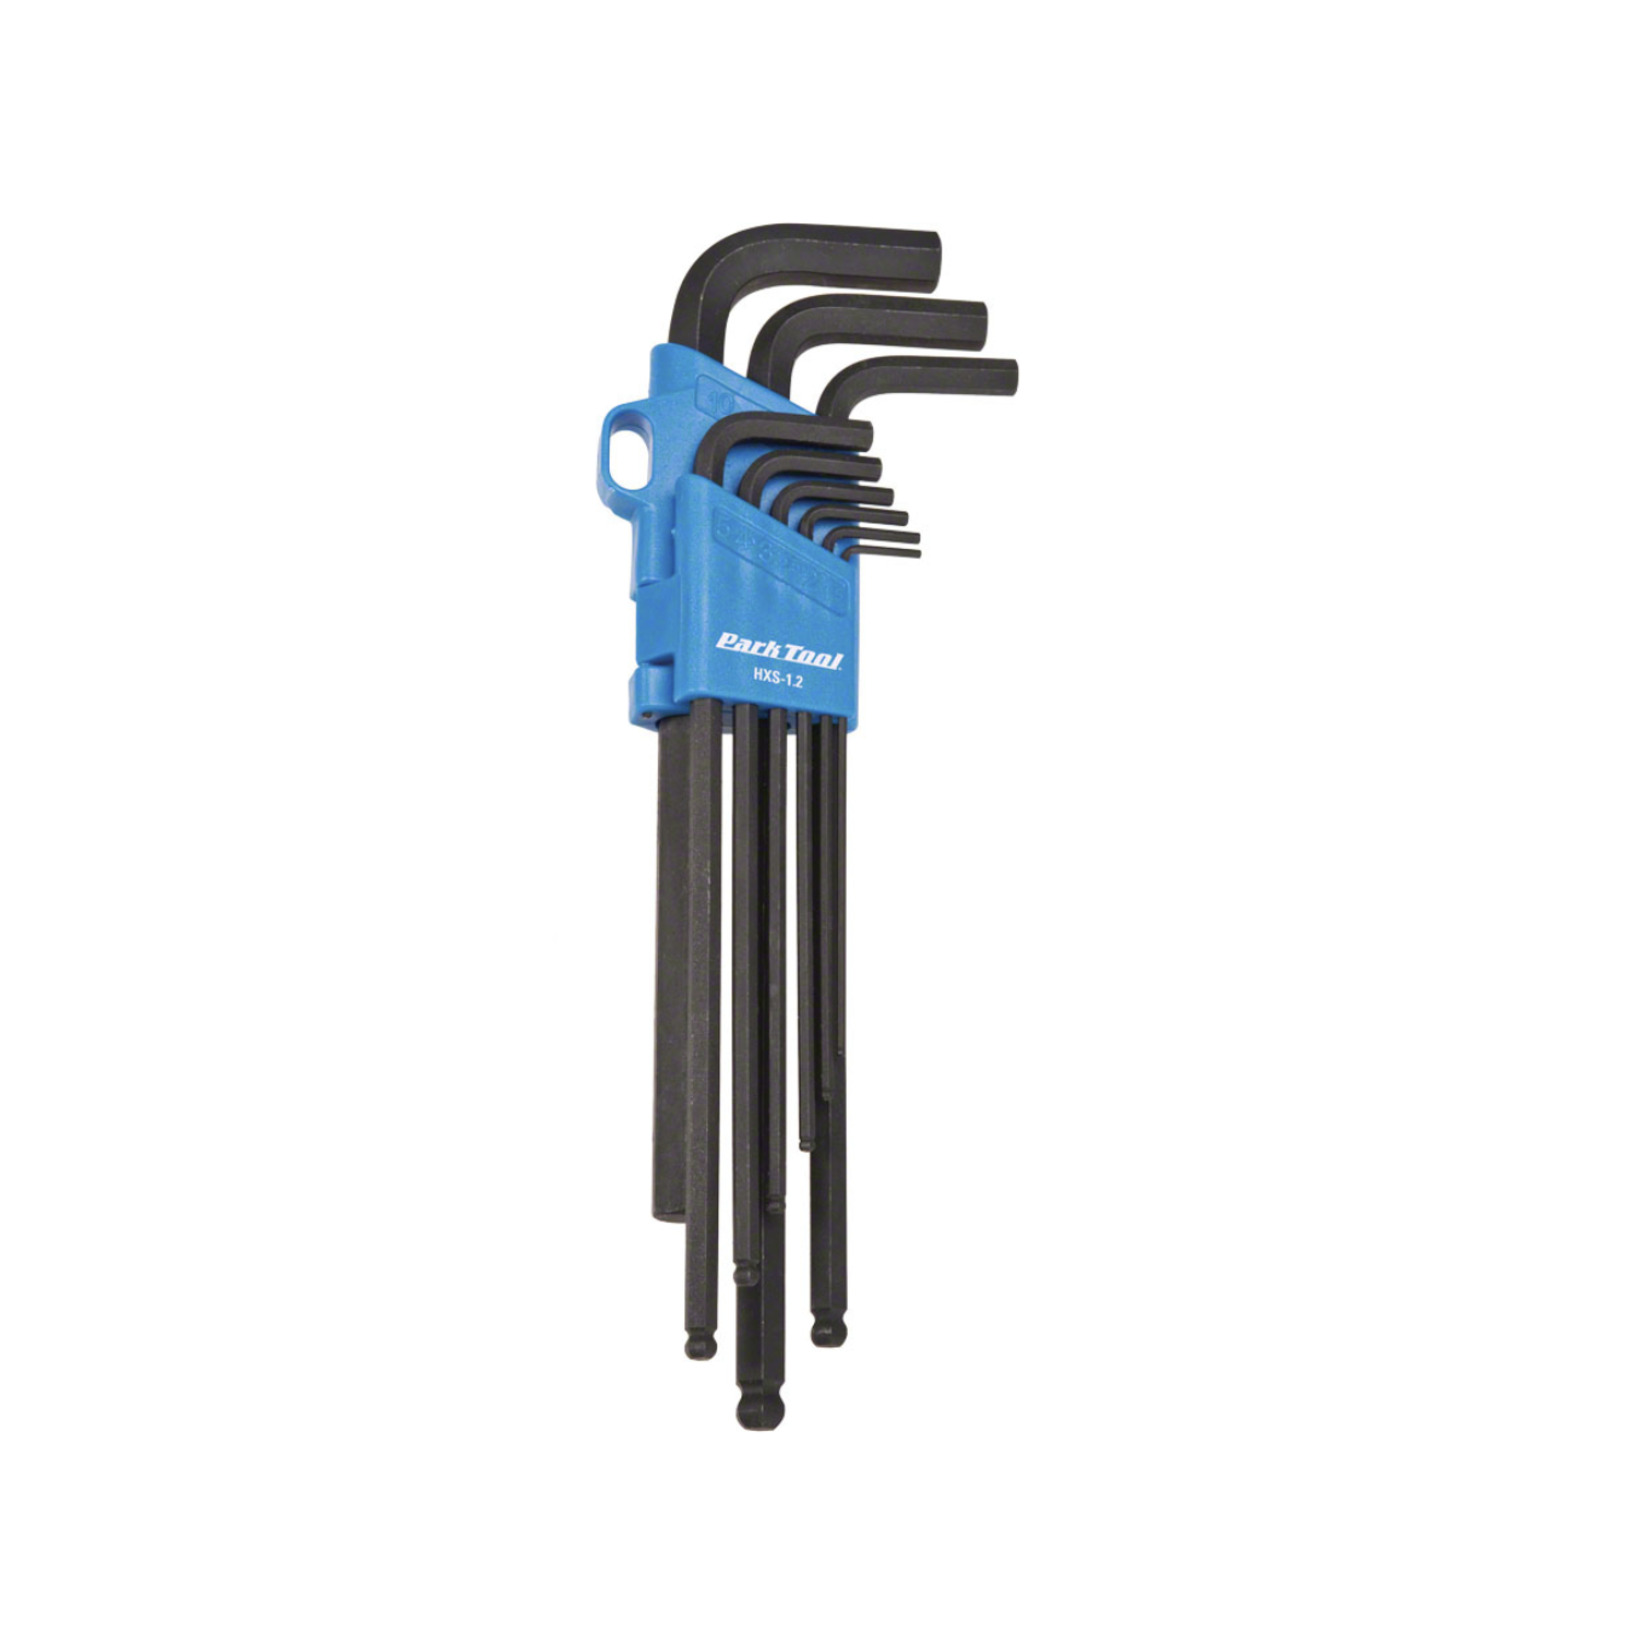 PARK TOOL PARK TOOL HXS-1.2  HEX WRENCH SET  TL7472